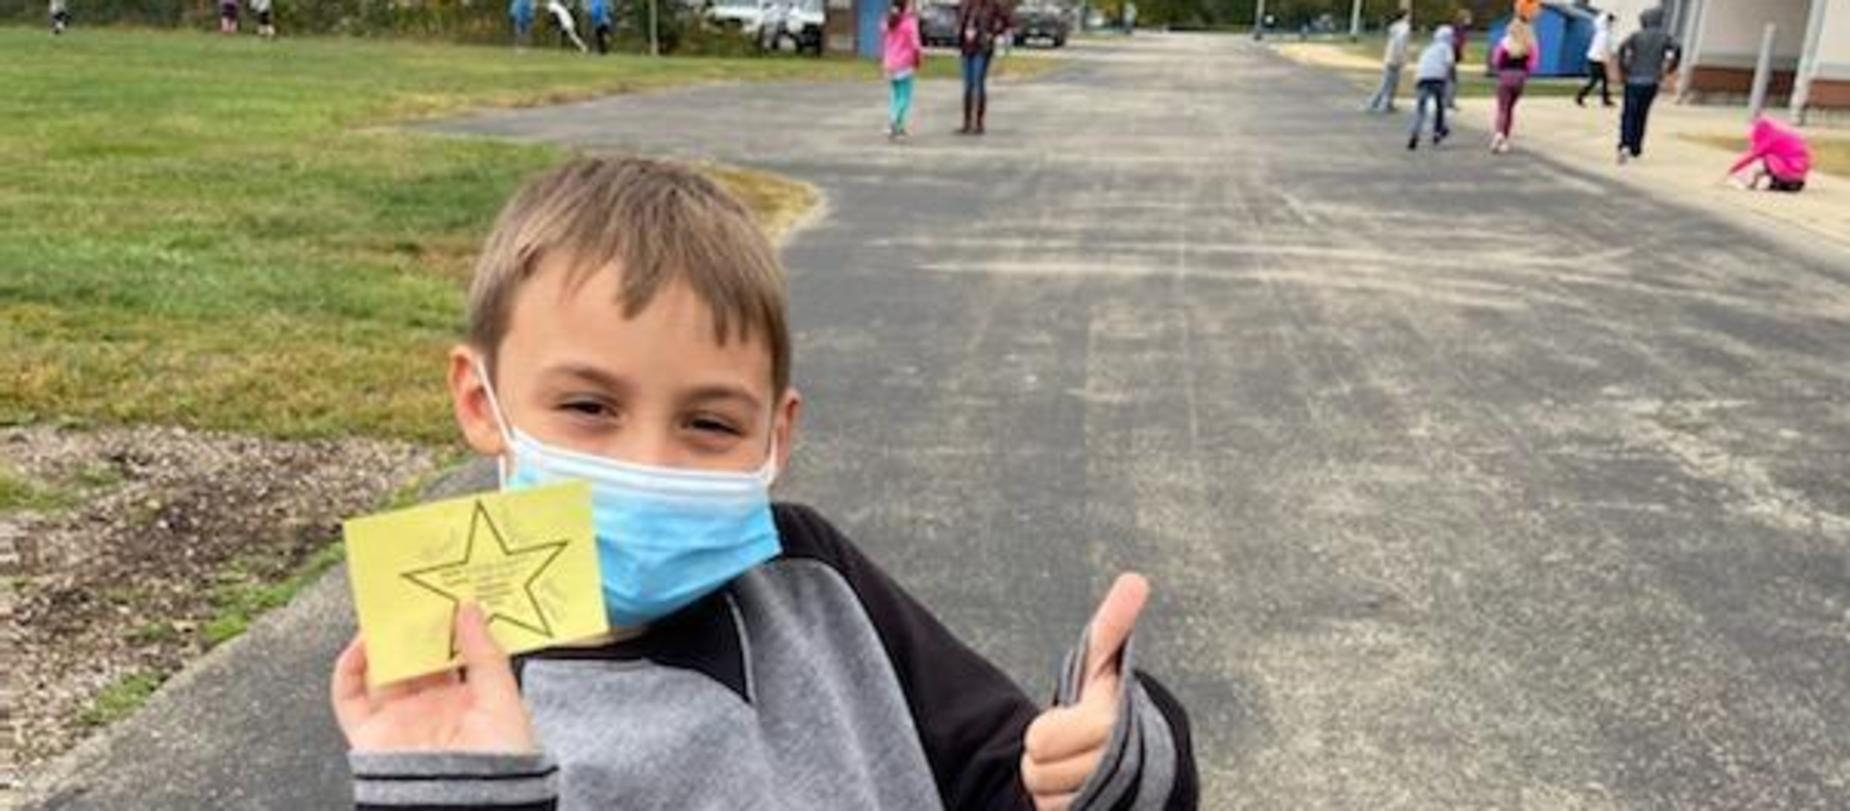 boy outside wearing a mask, giving a thumbs up